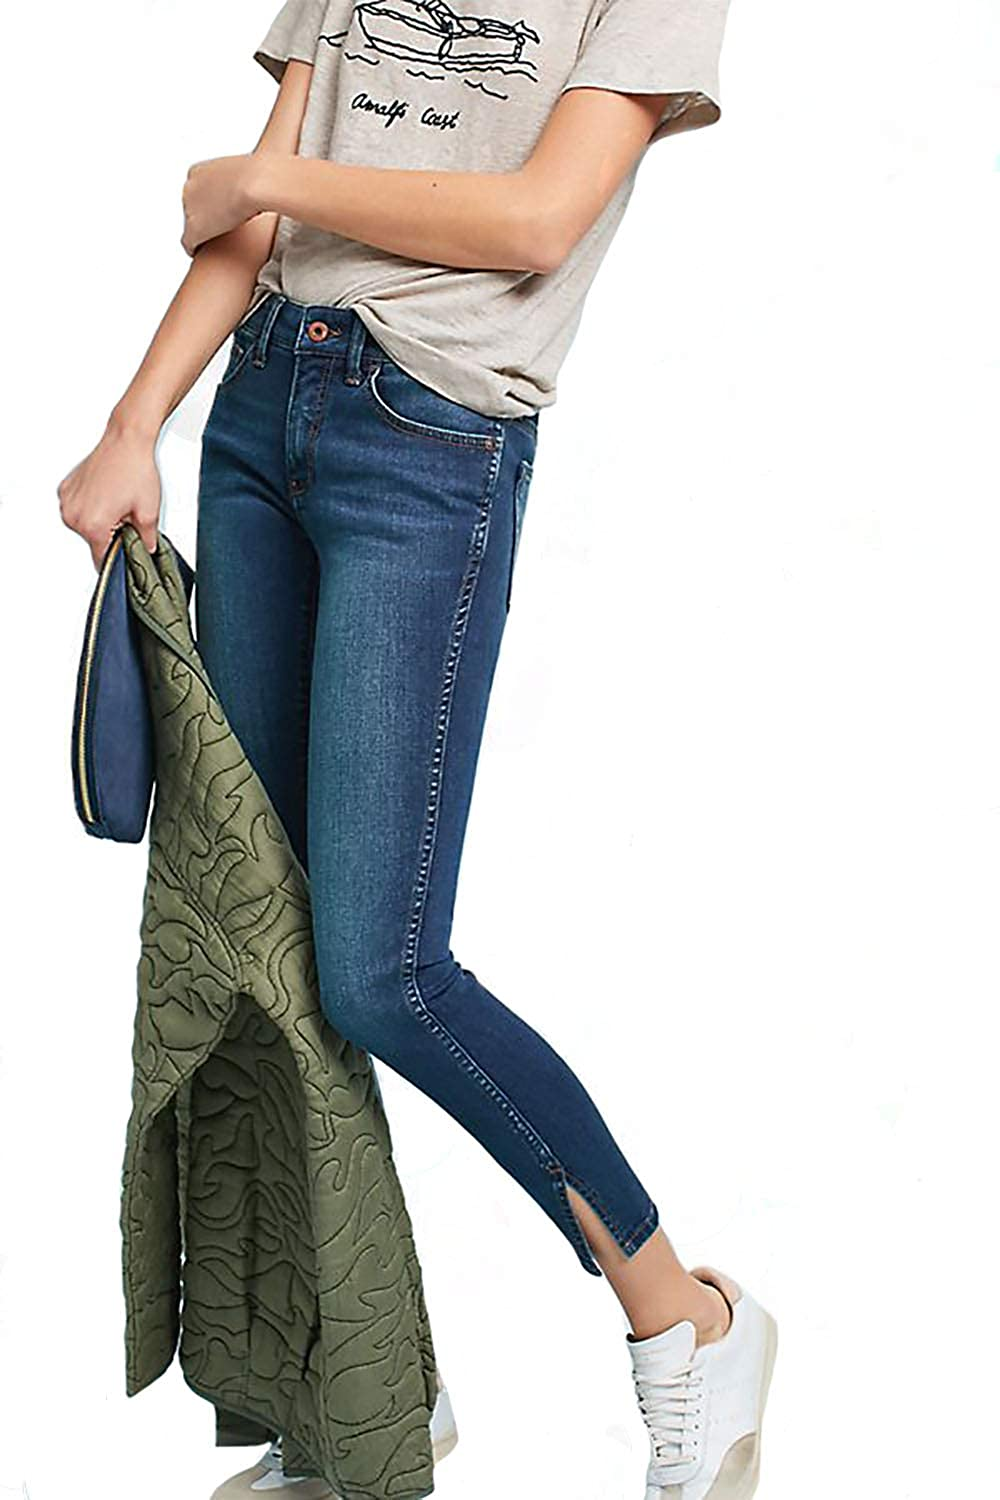 31 NEW Anthropologie-Pilcro Floral Embroidered Mid-Rise Boyfriend Jeans 26 28